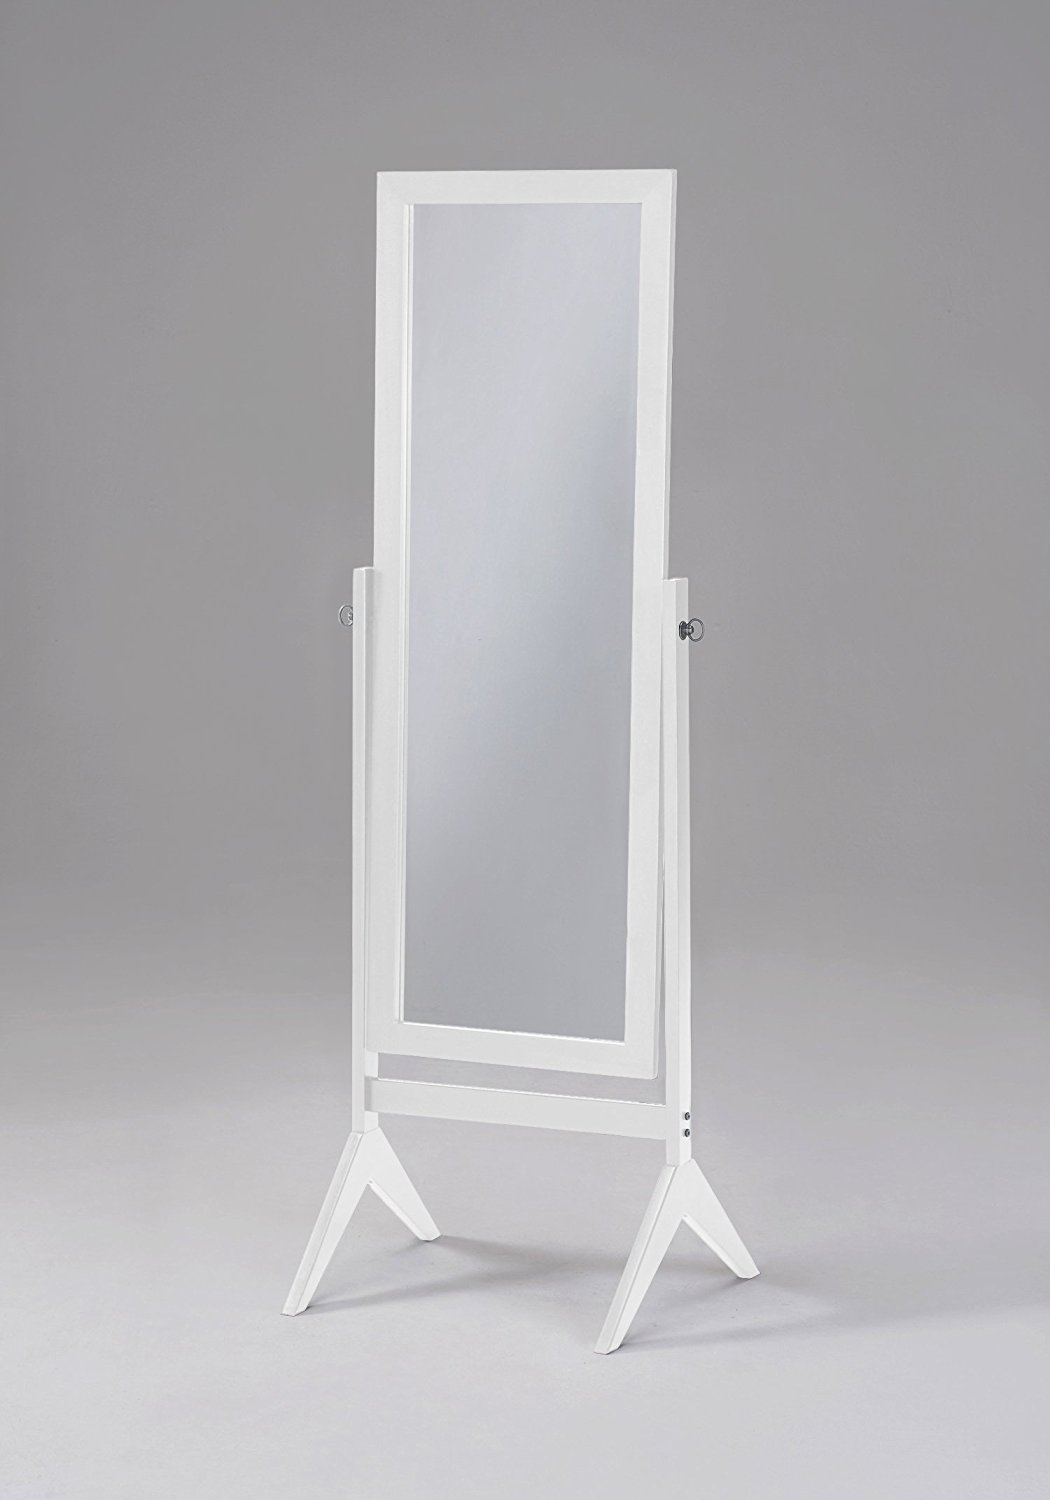 Shop Amazon Floor Mirrors Intended For Free Standing Oval Mirror (Image 14 of 15)